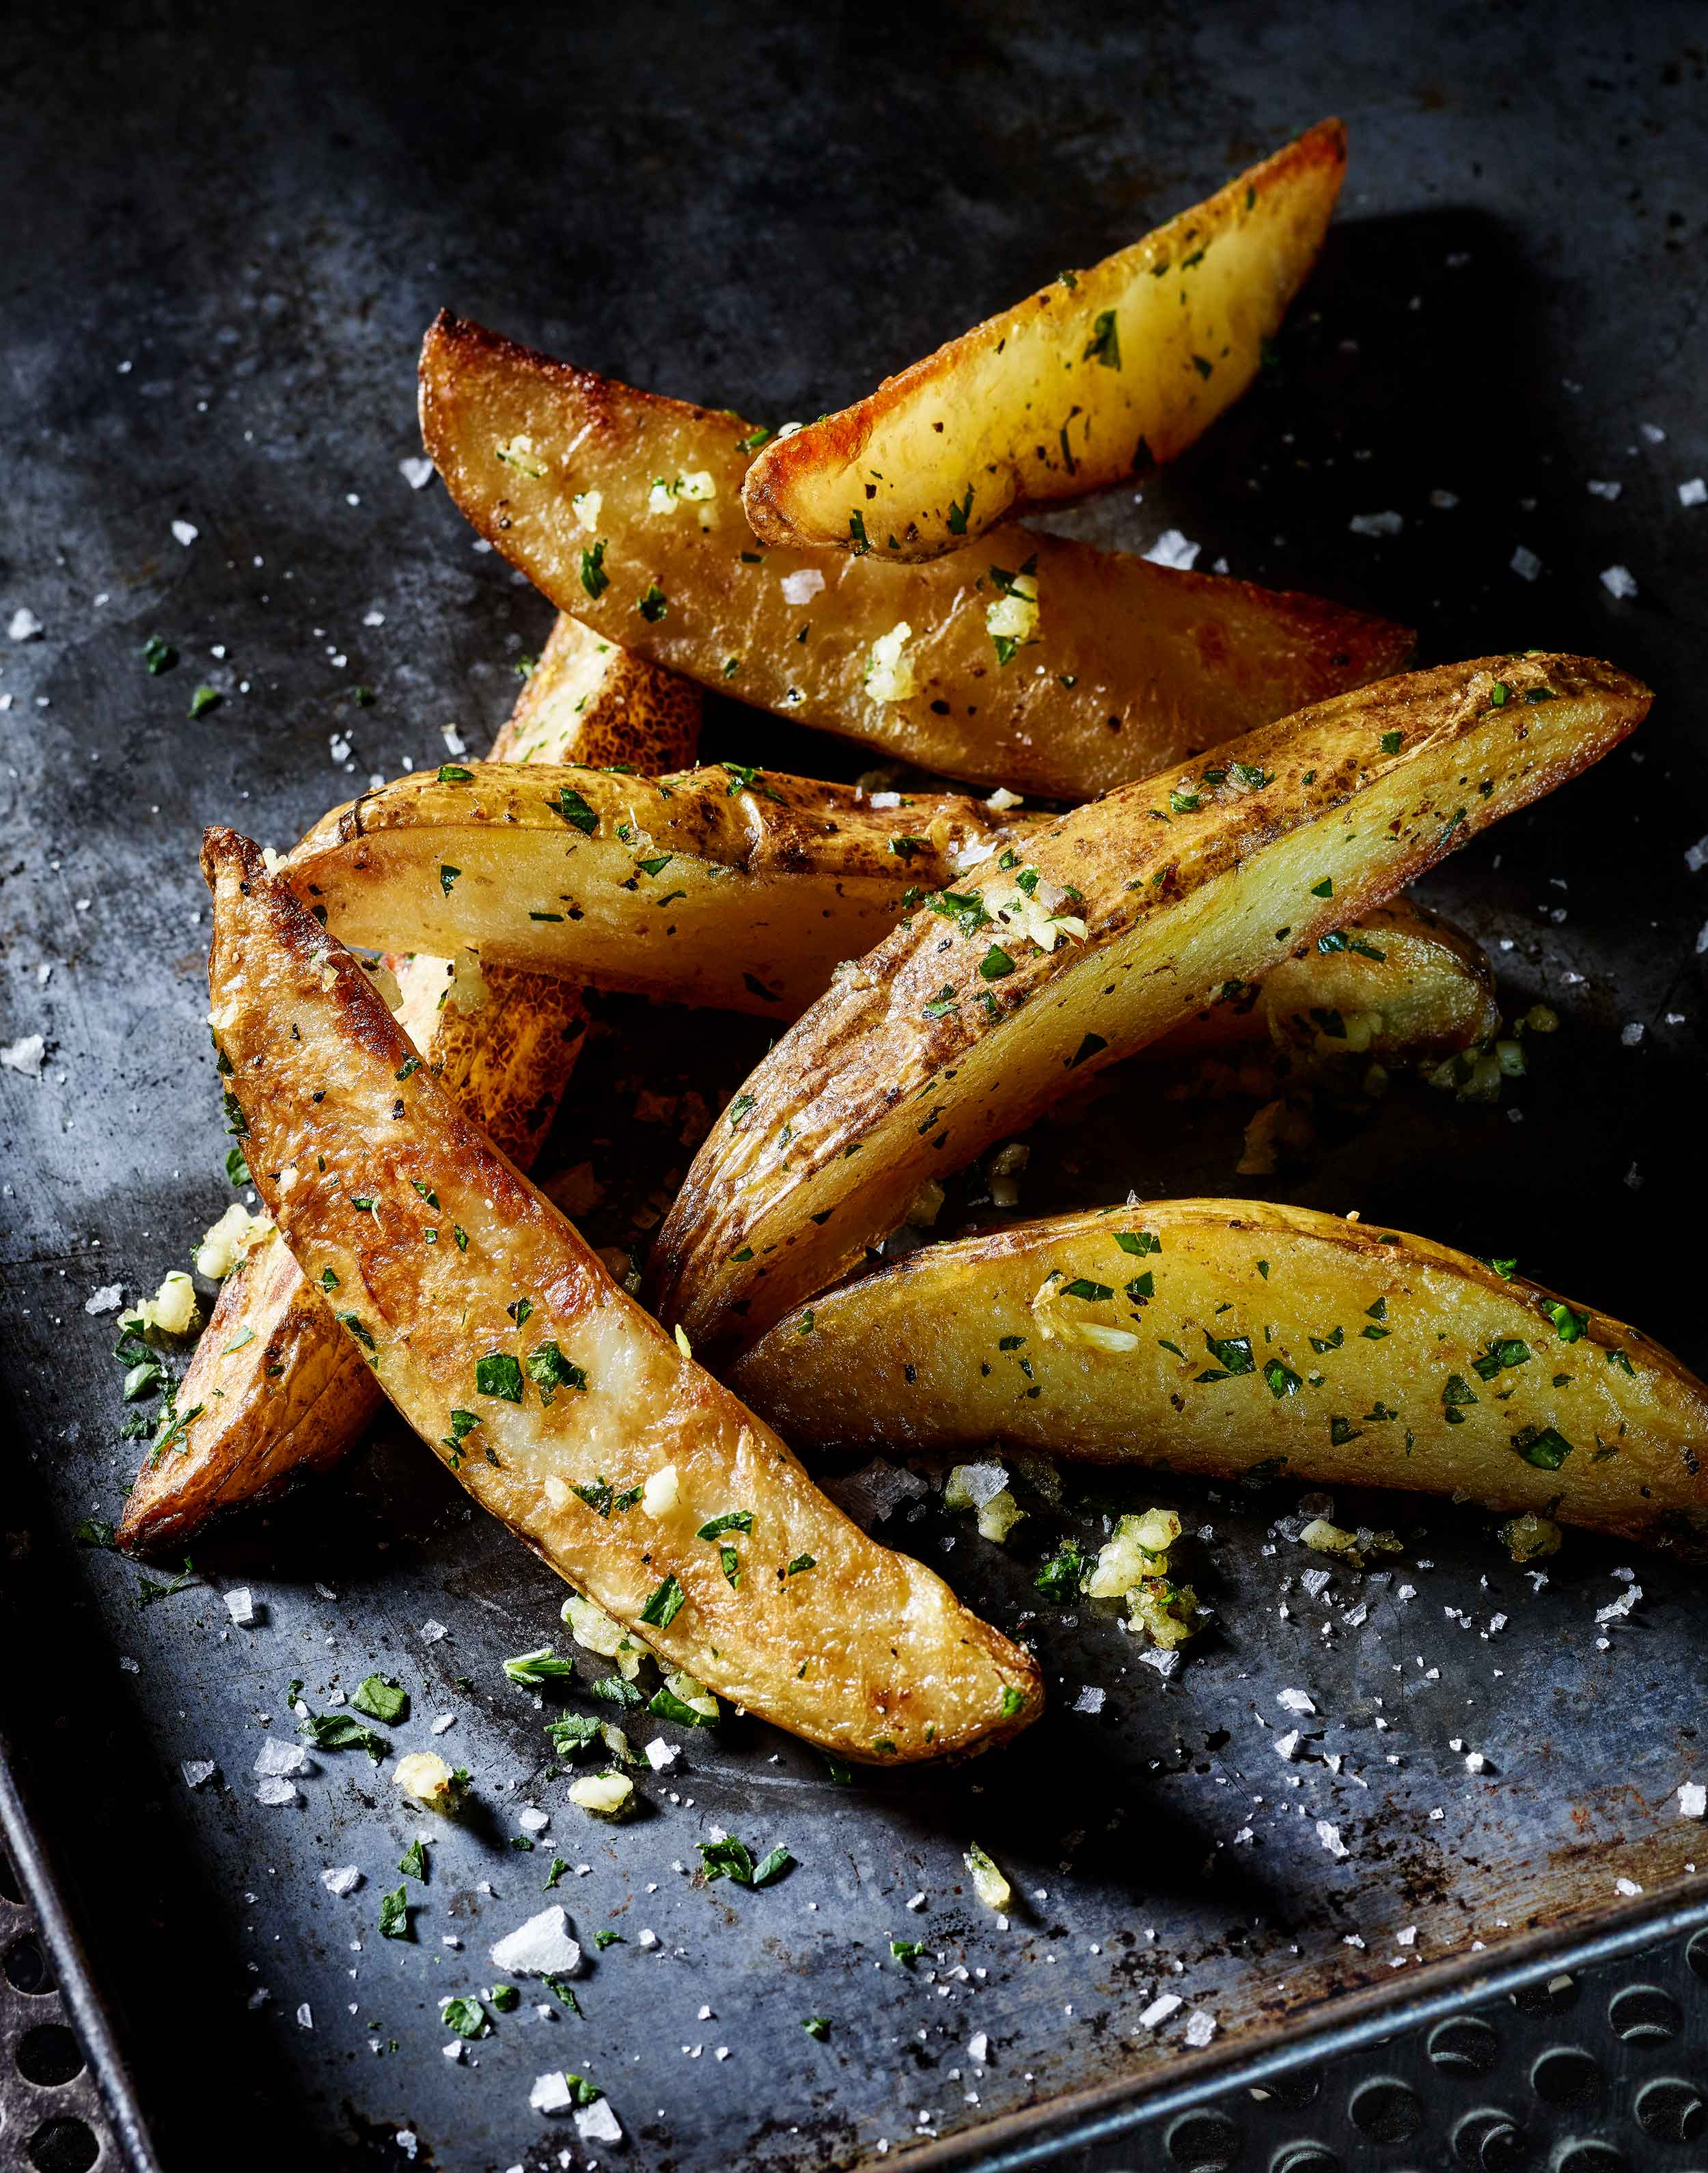 Baked Potato Wedges with Fresh Garlic and Parsley